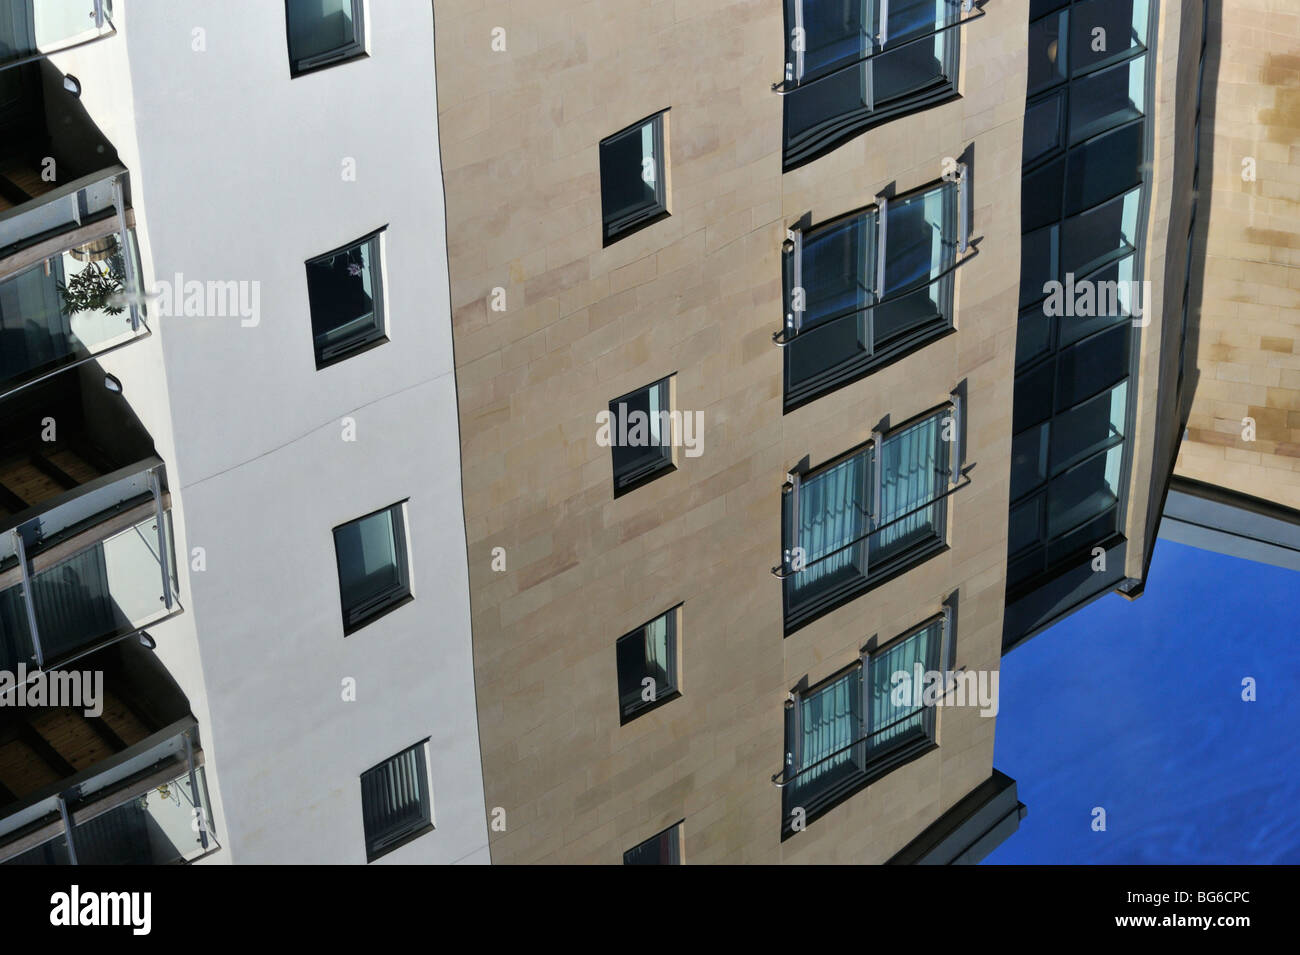 Multistorey apartment building reflected in water. Lancaster Canal, Lancaster, Lancashire, England, United Kingdom, - Stock Image